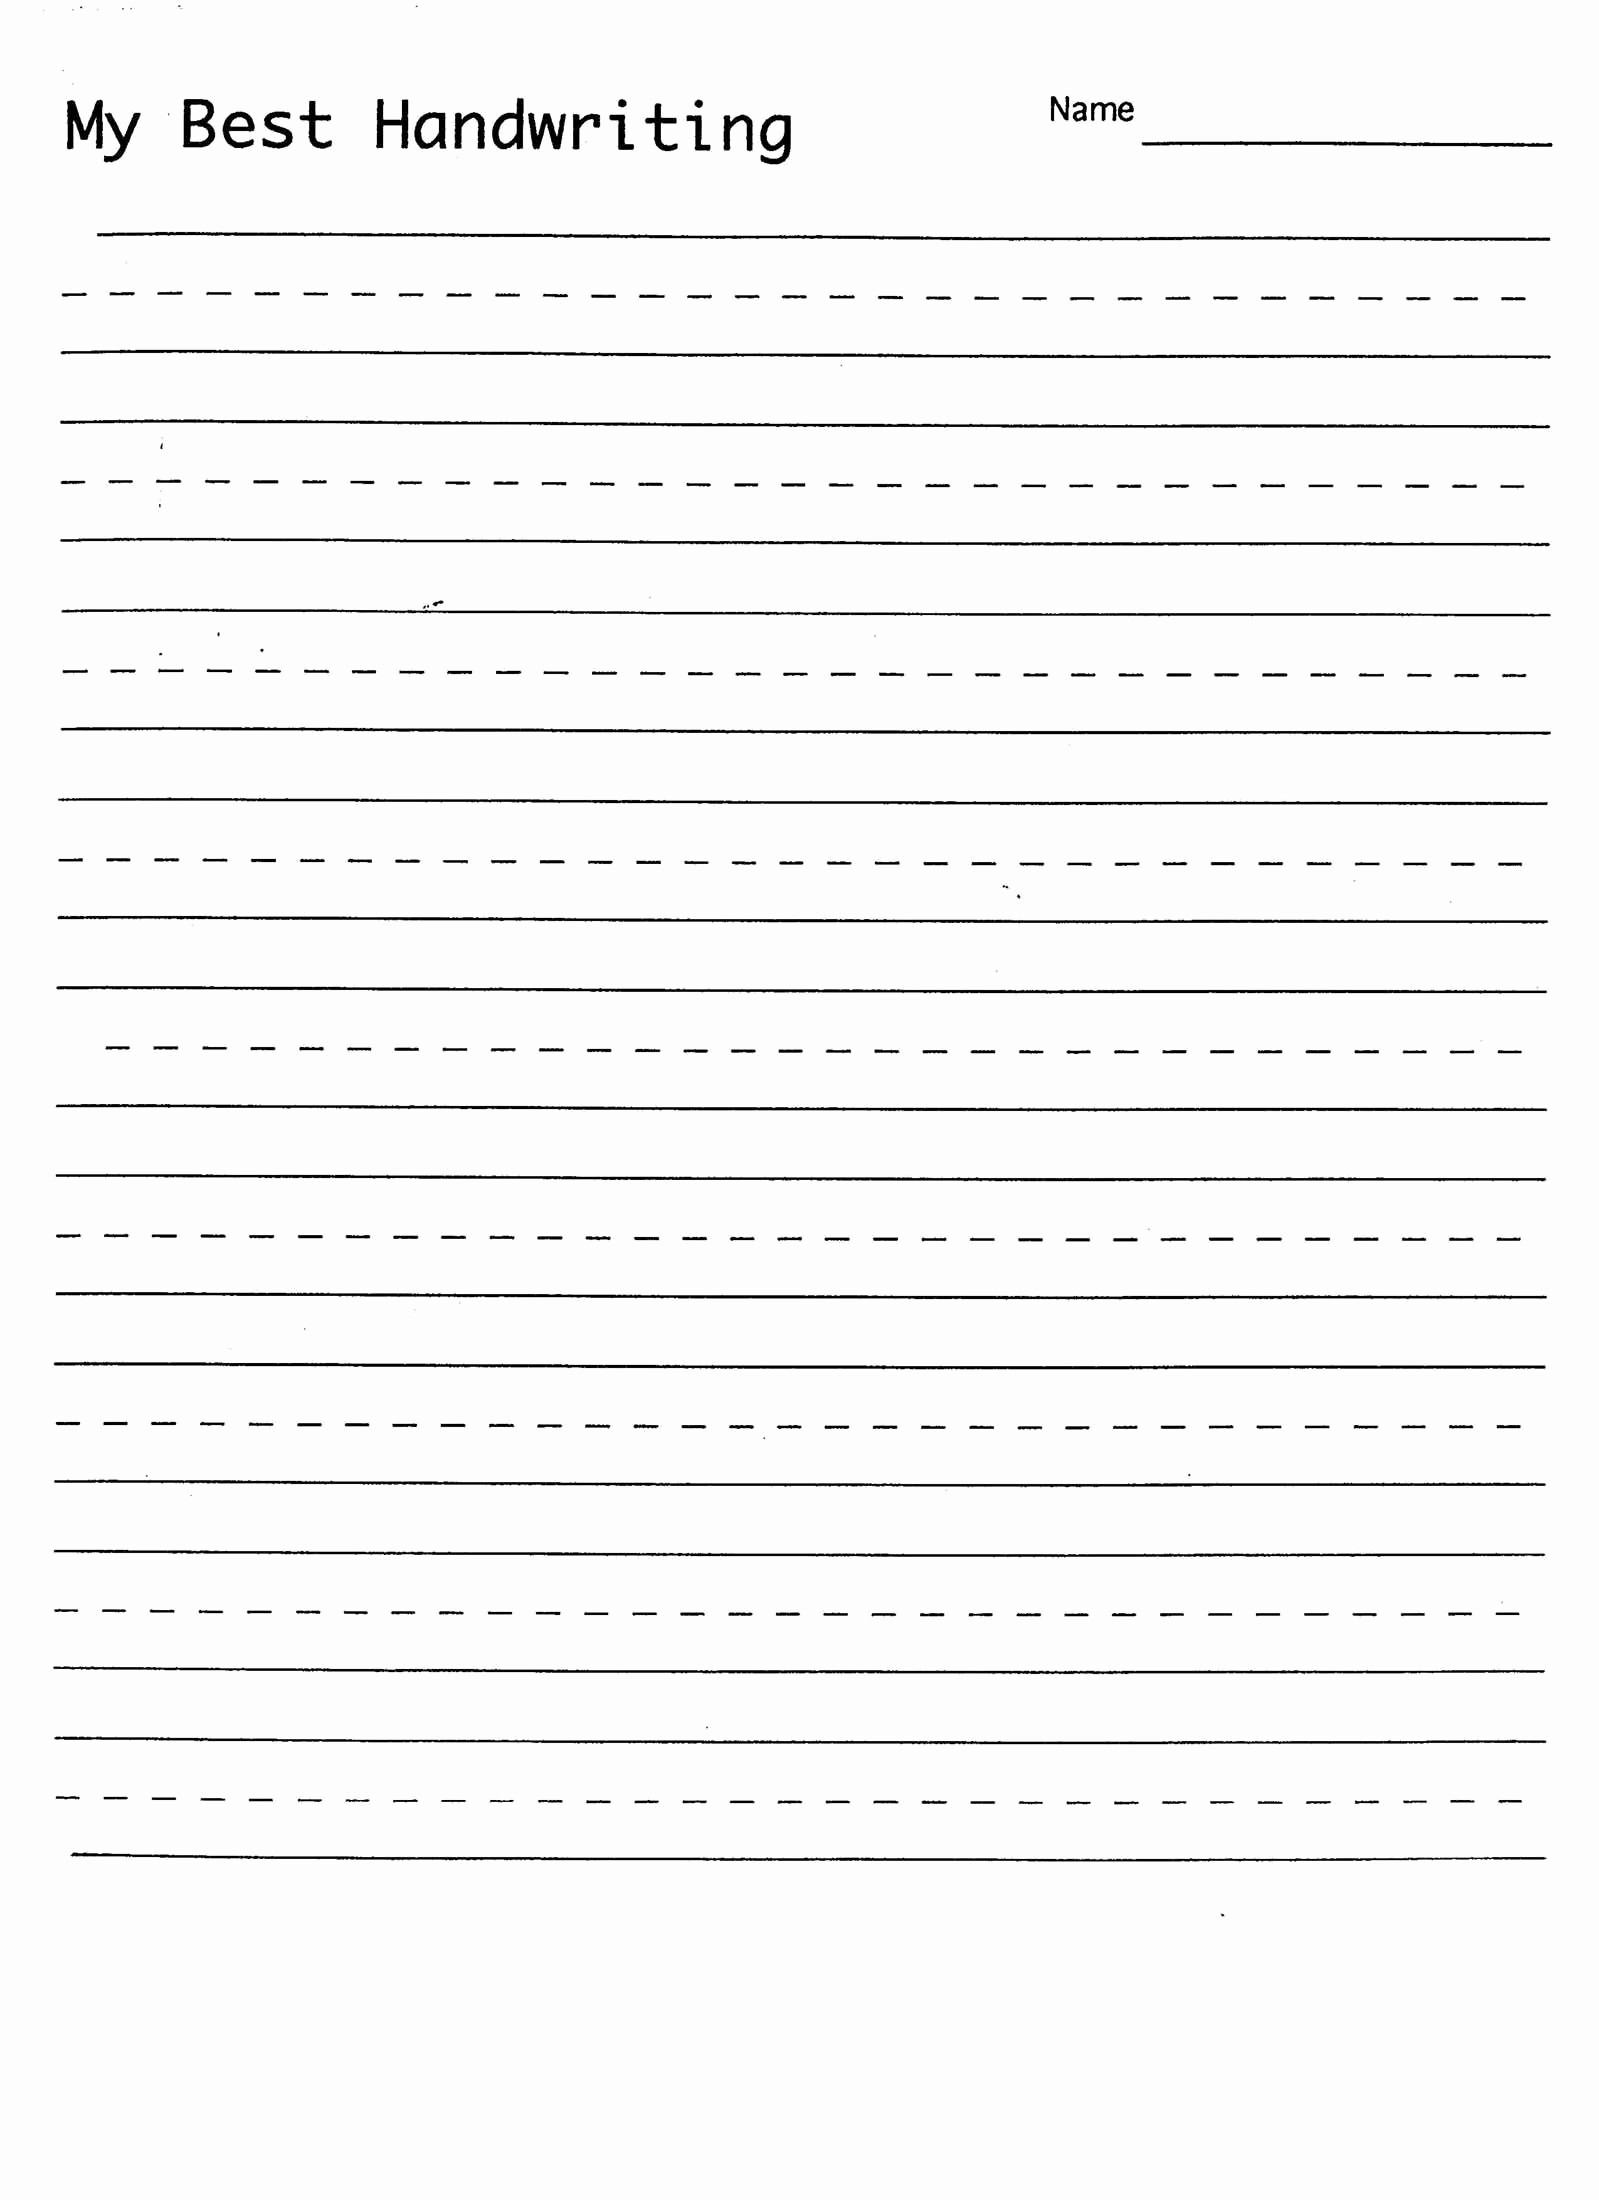 Lined Sheets for Handwriting Practice Fresh Handwriting Practice Sheet Child Education